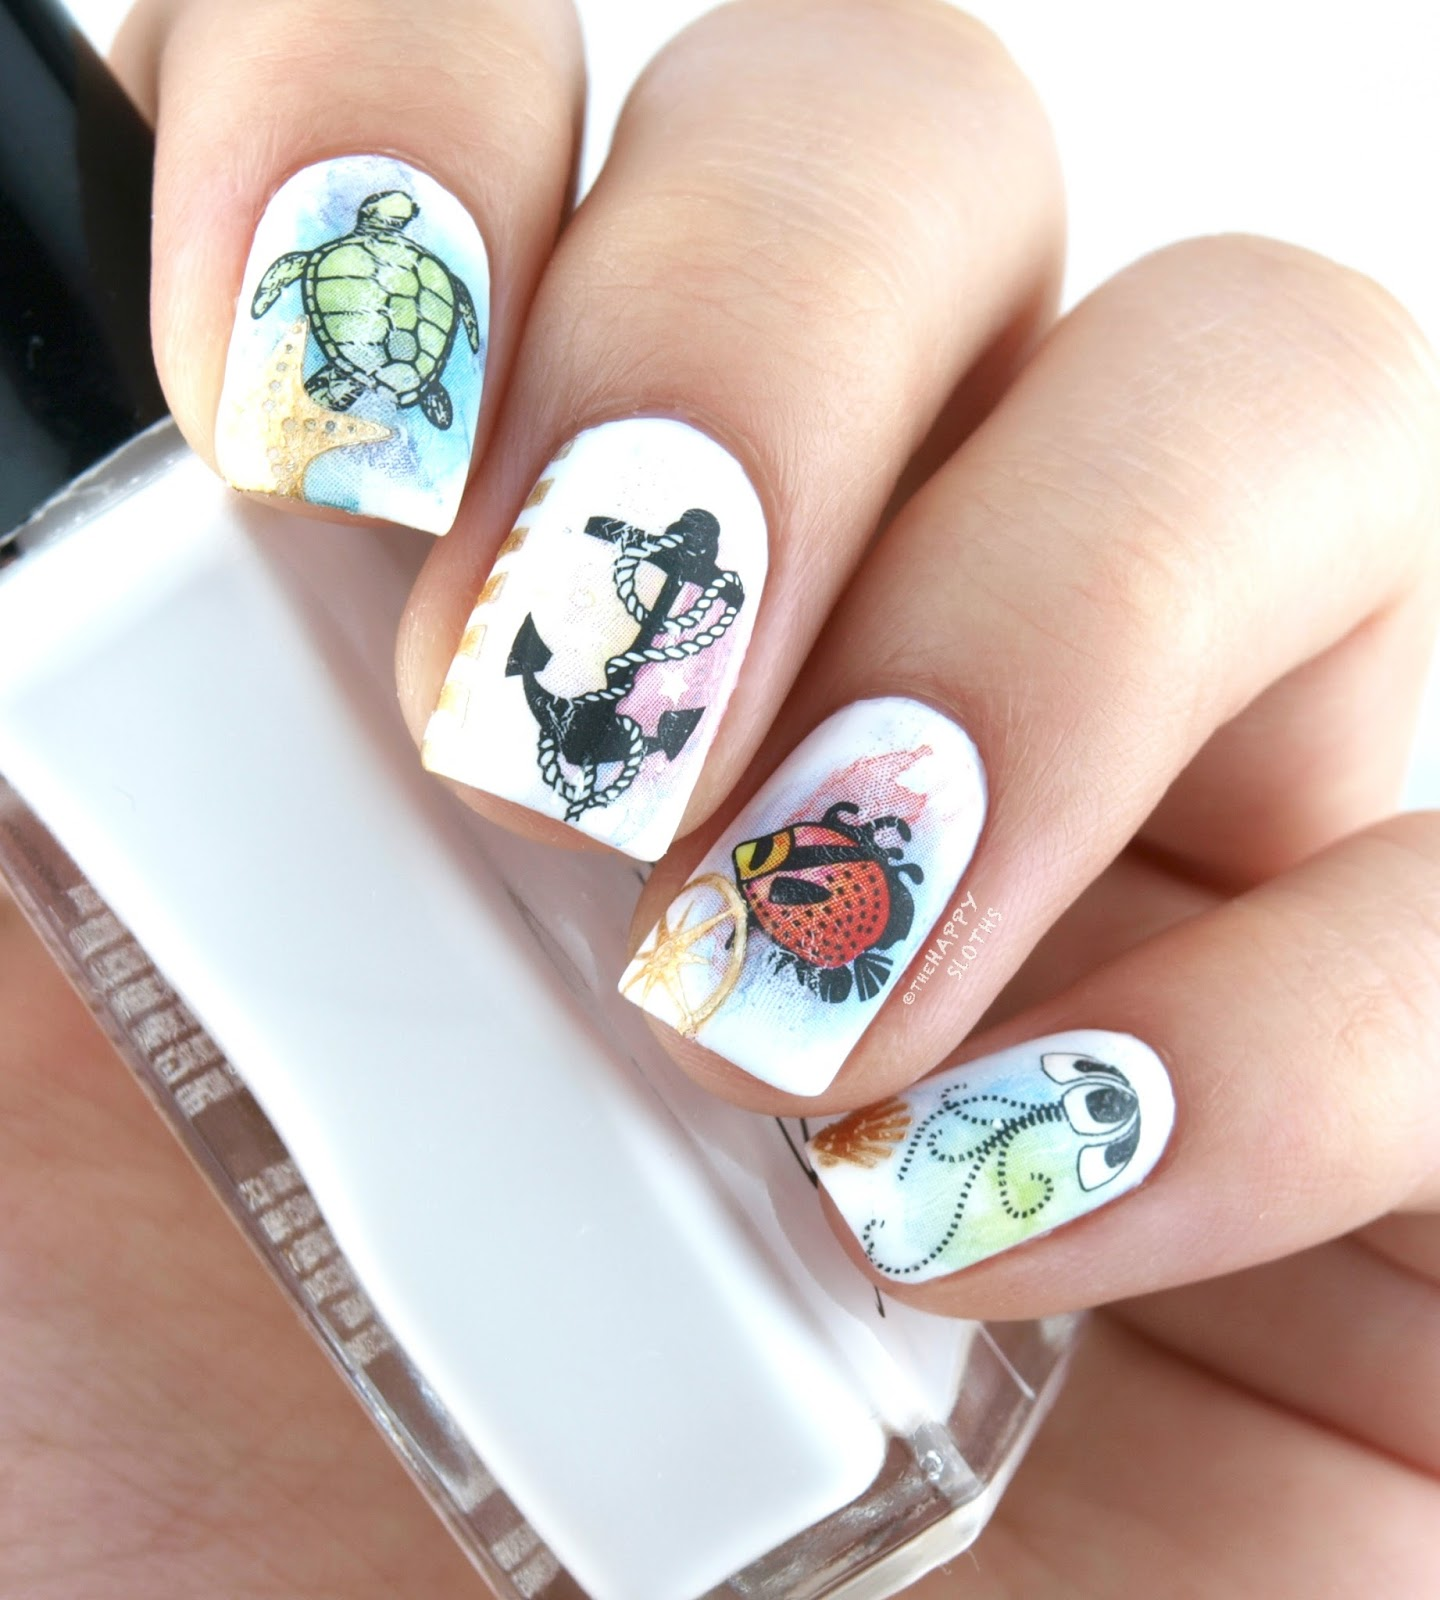 Moyou London Hand Tattoos Review The Happy Sloths